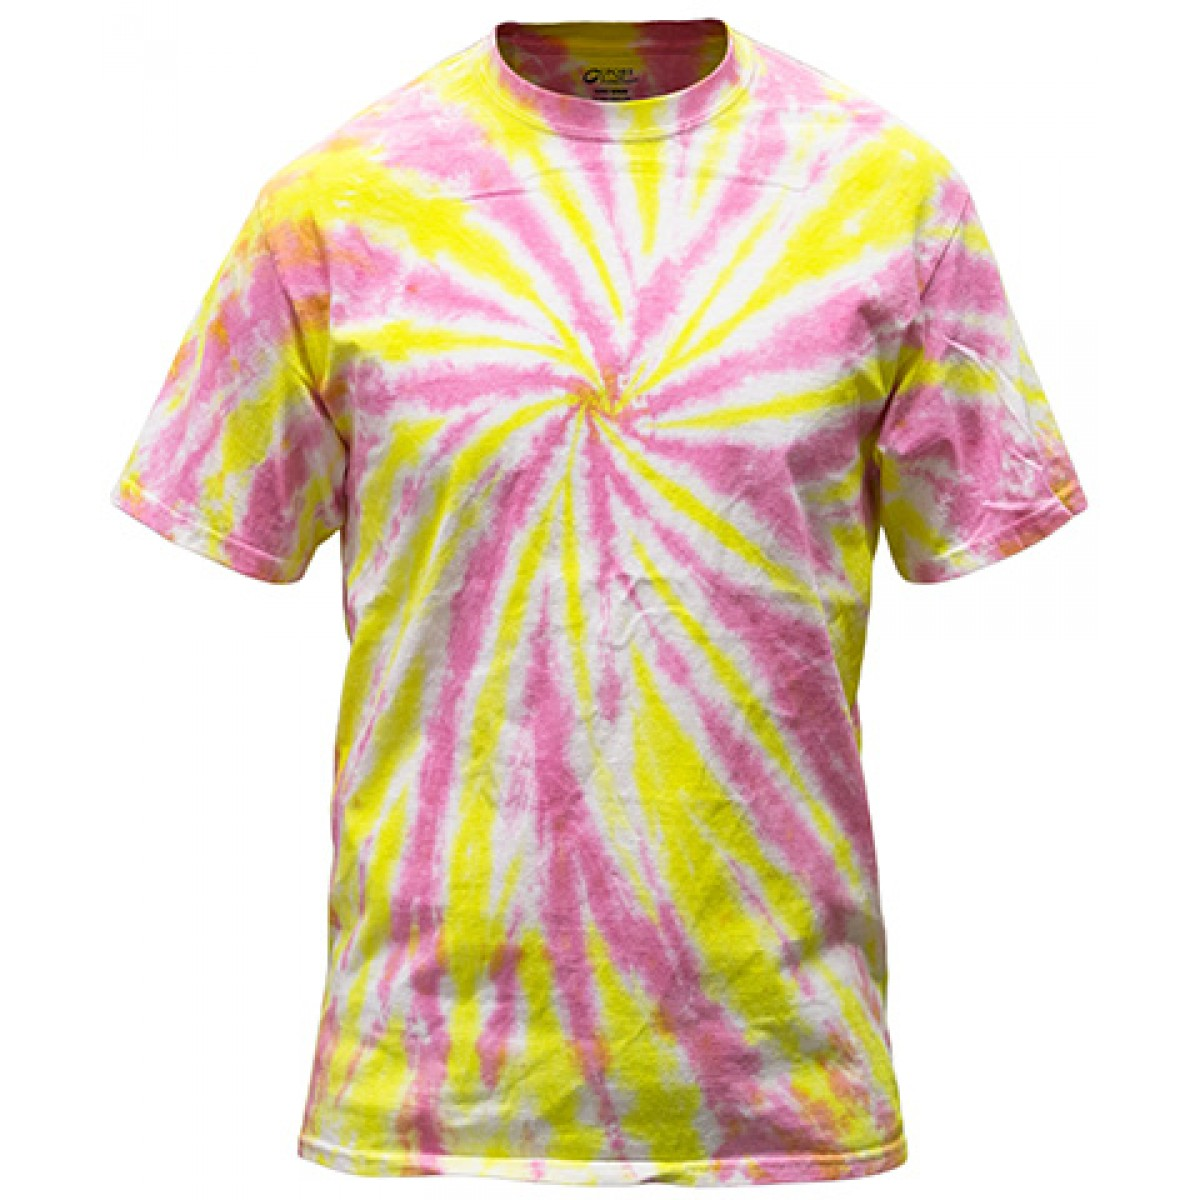 Multi-Color Tie-Dye Tee -Pink/Yellow-M